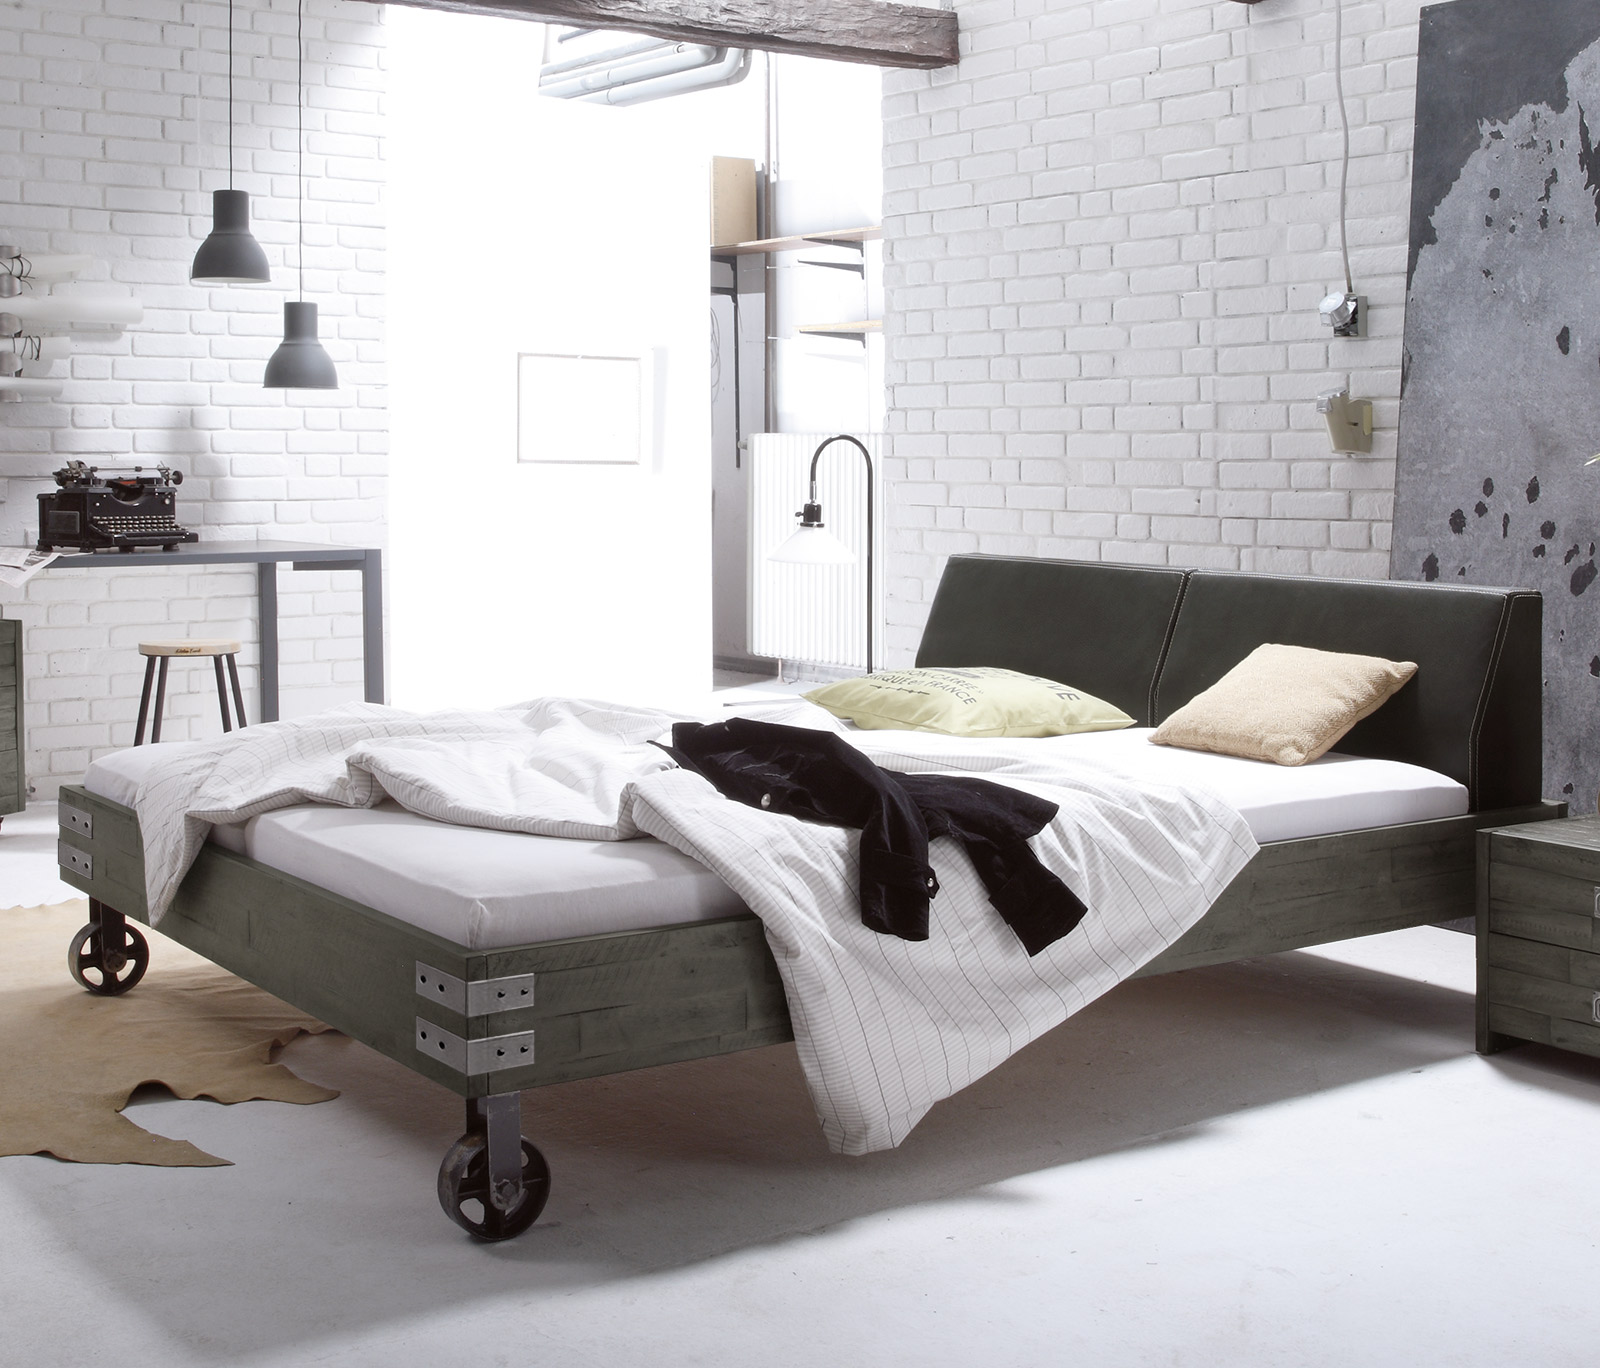 massivholzbett mit rollen im industrial design tornio. Black Bedroom Furniture Sets. Home Design Ideas